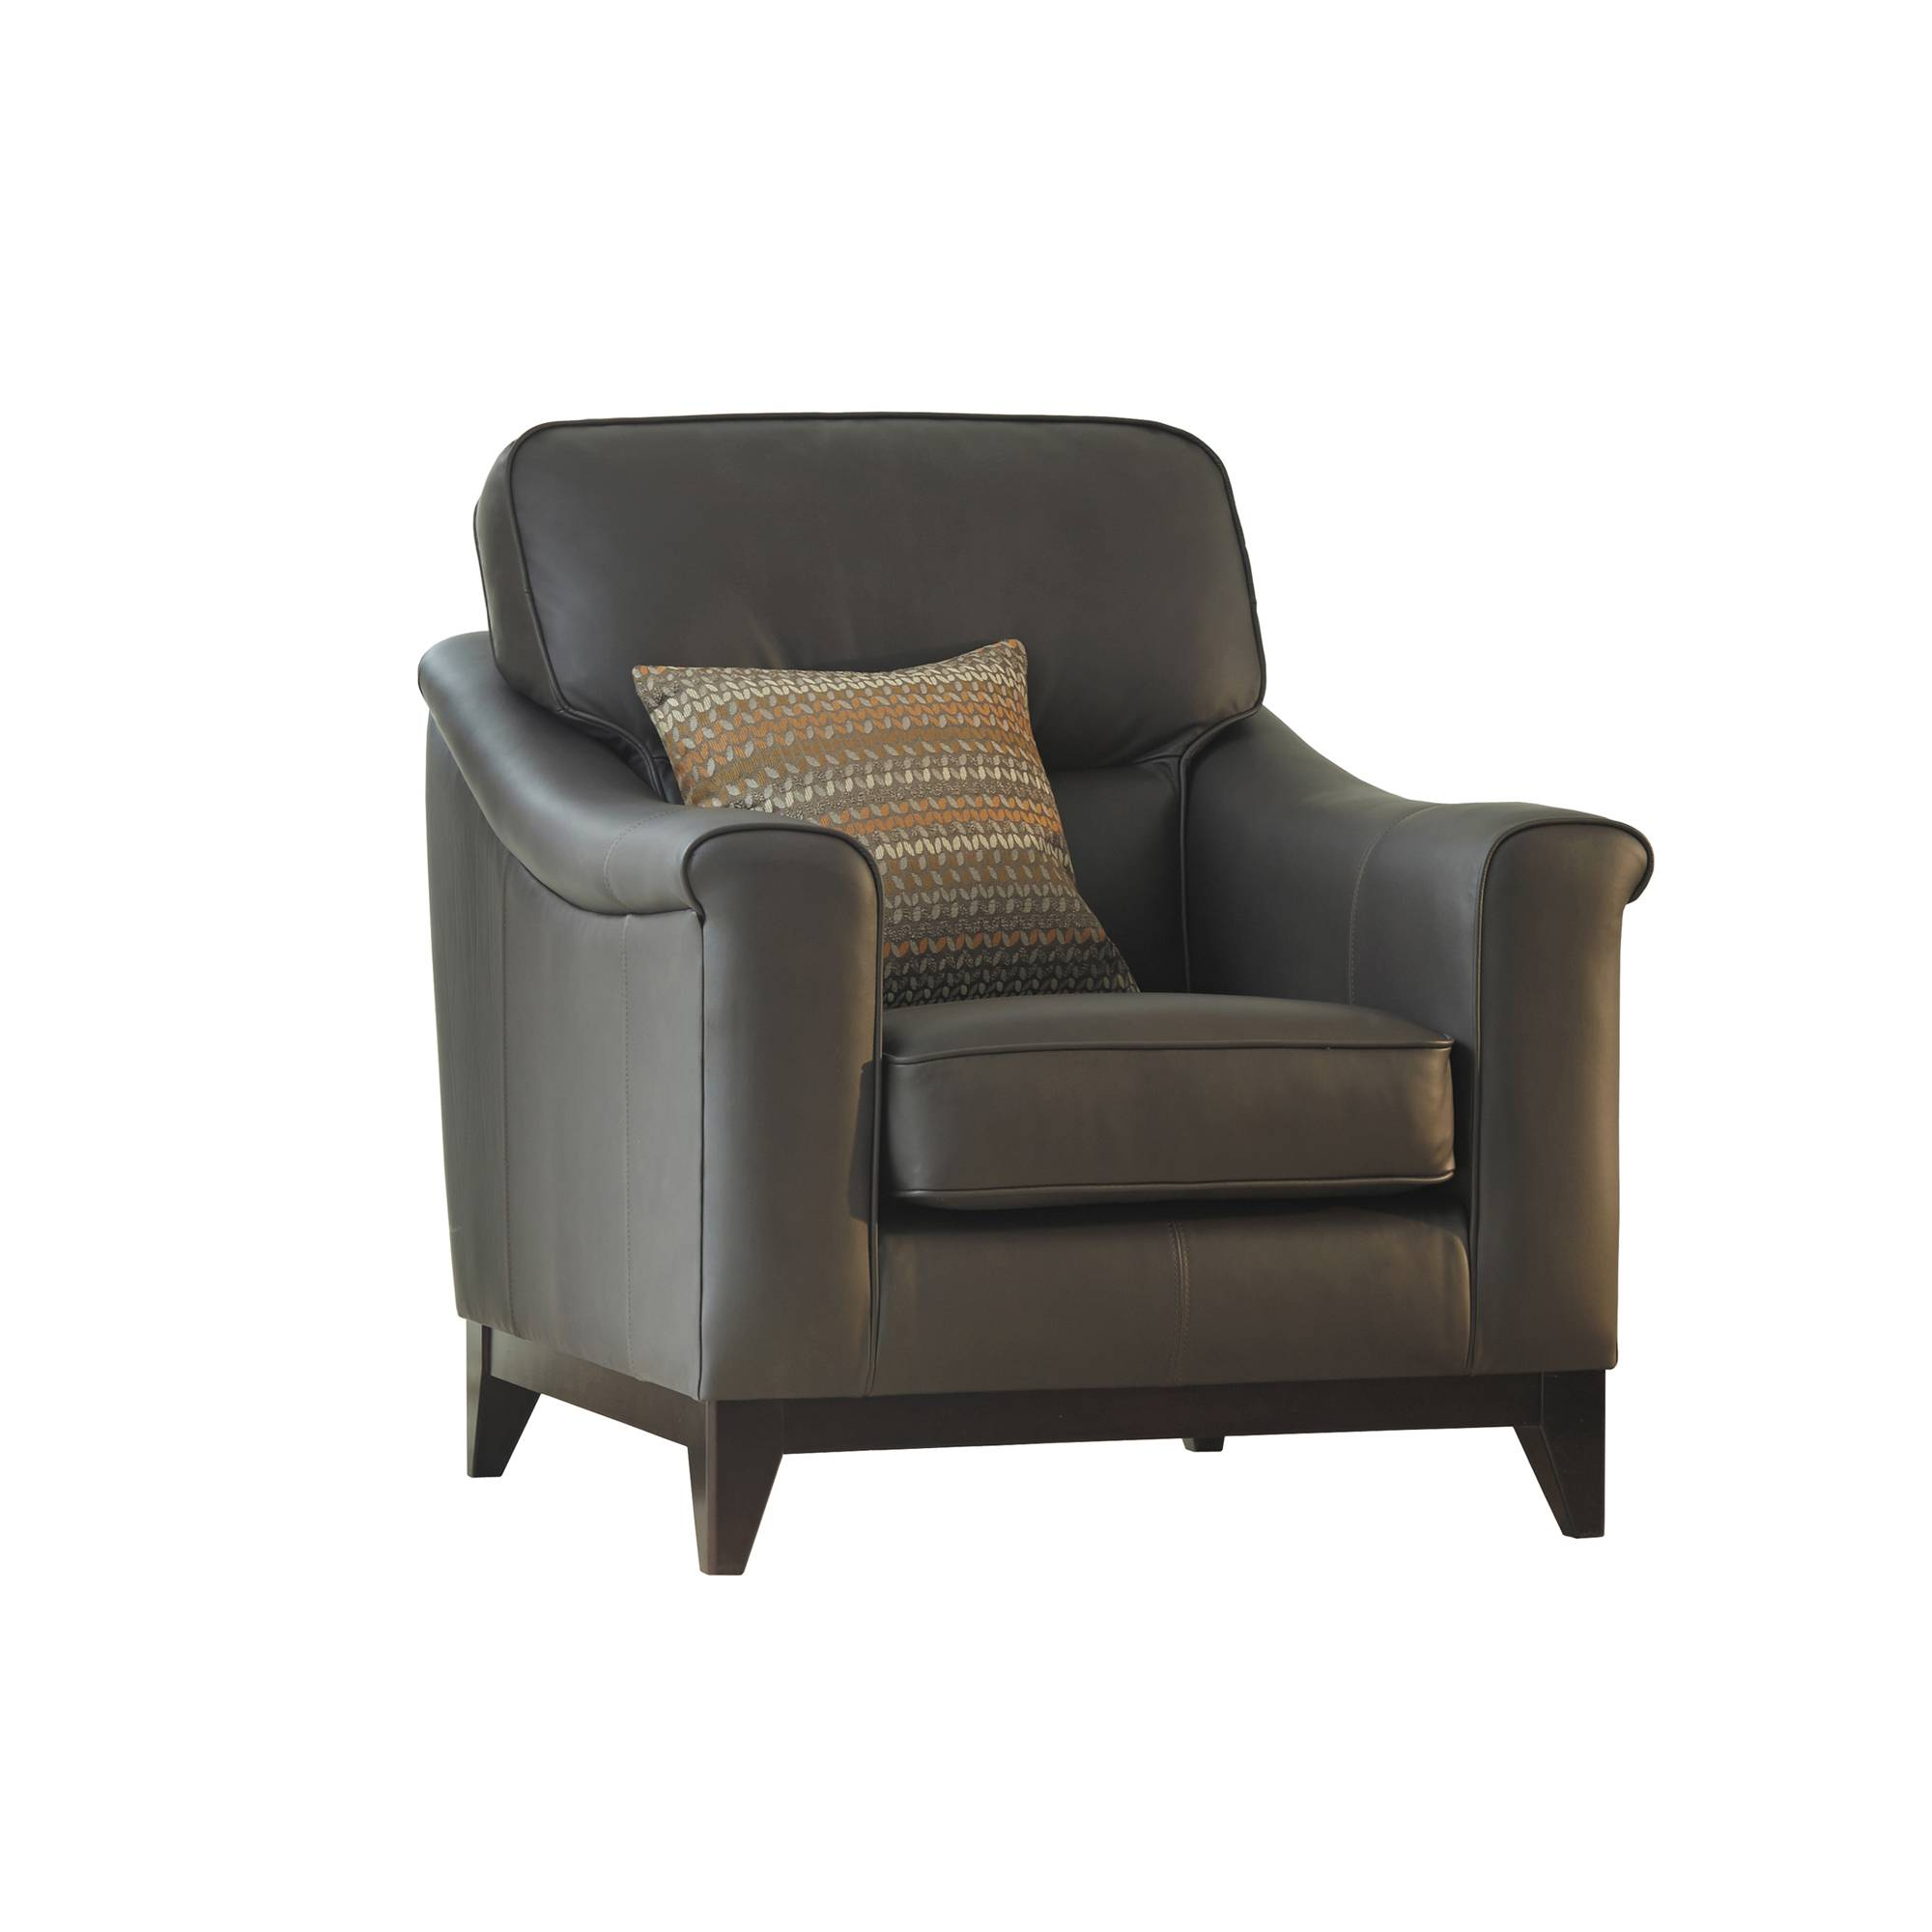 parker knoll montana armchair fabric a all sofa collections meubles. Black Bedroom Furniture Sets. Home Design Ideas